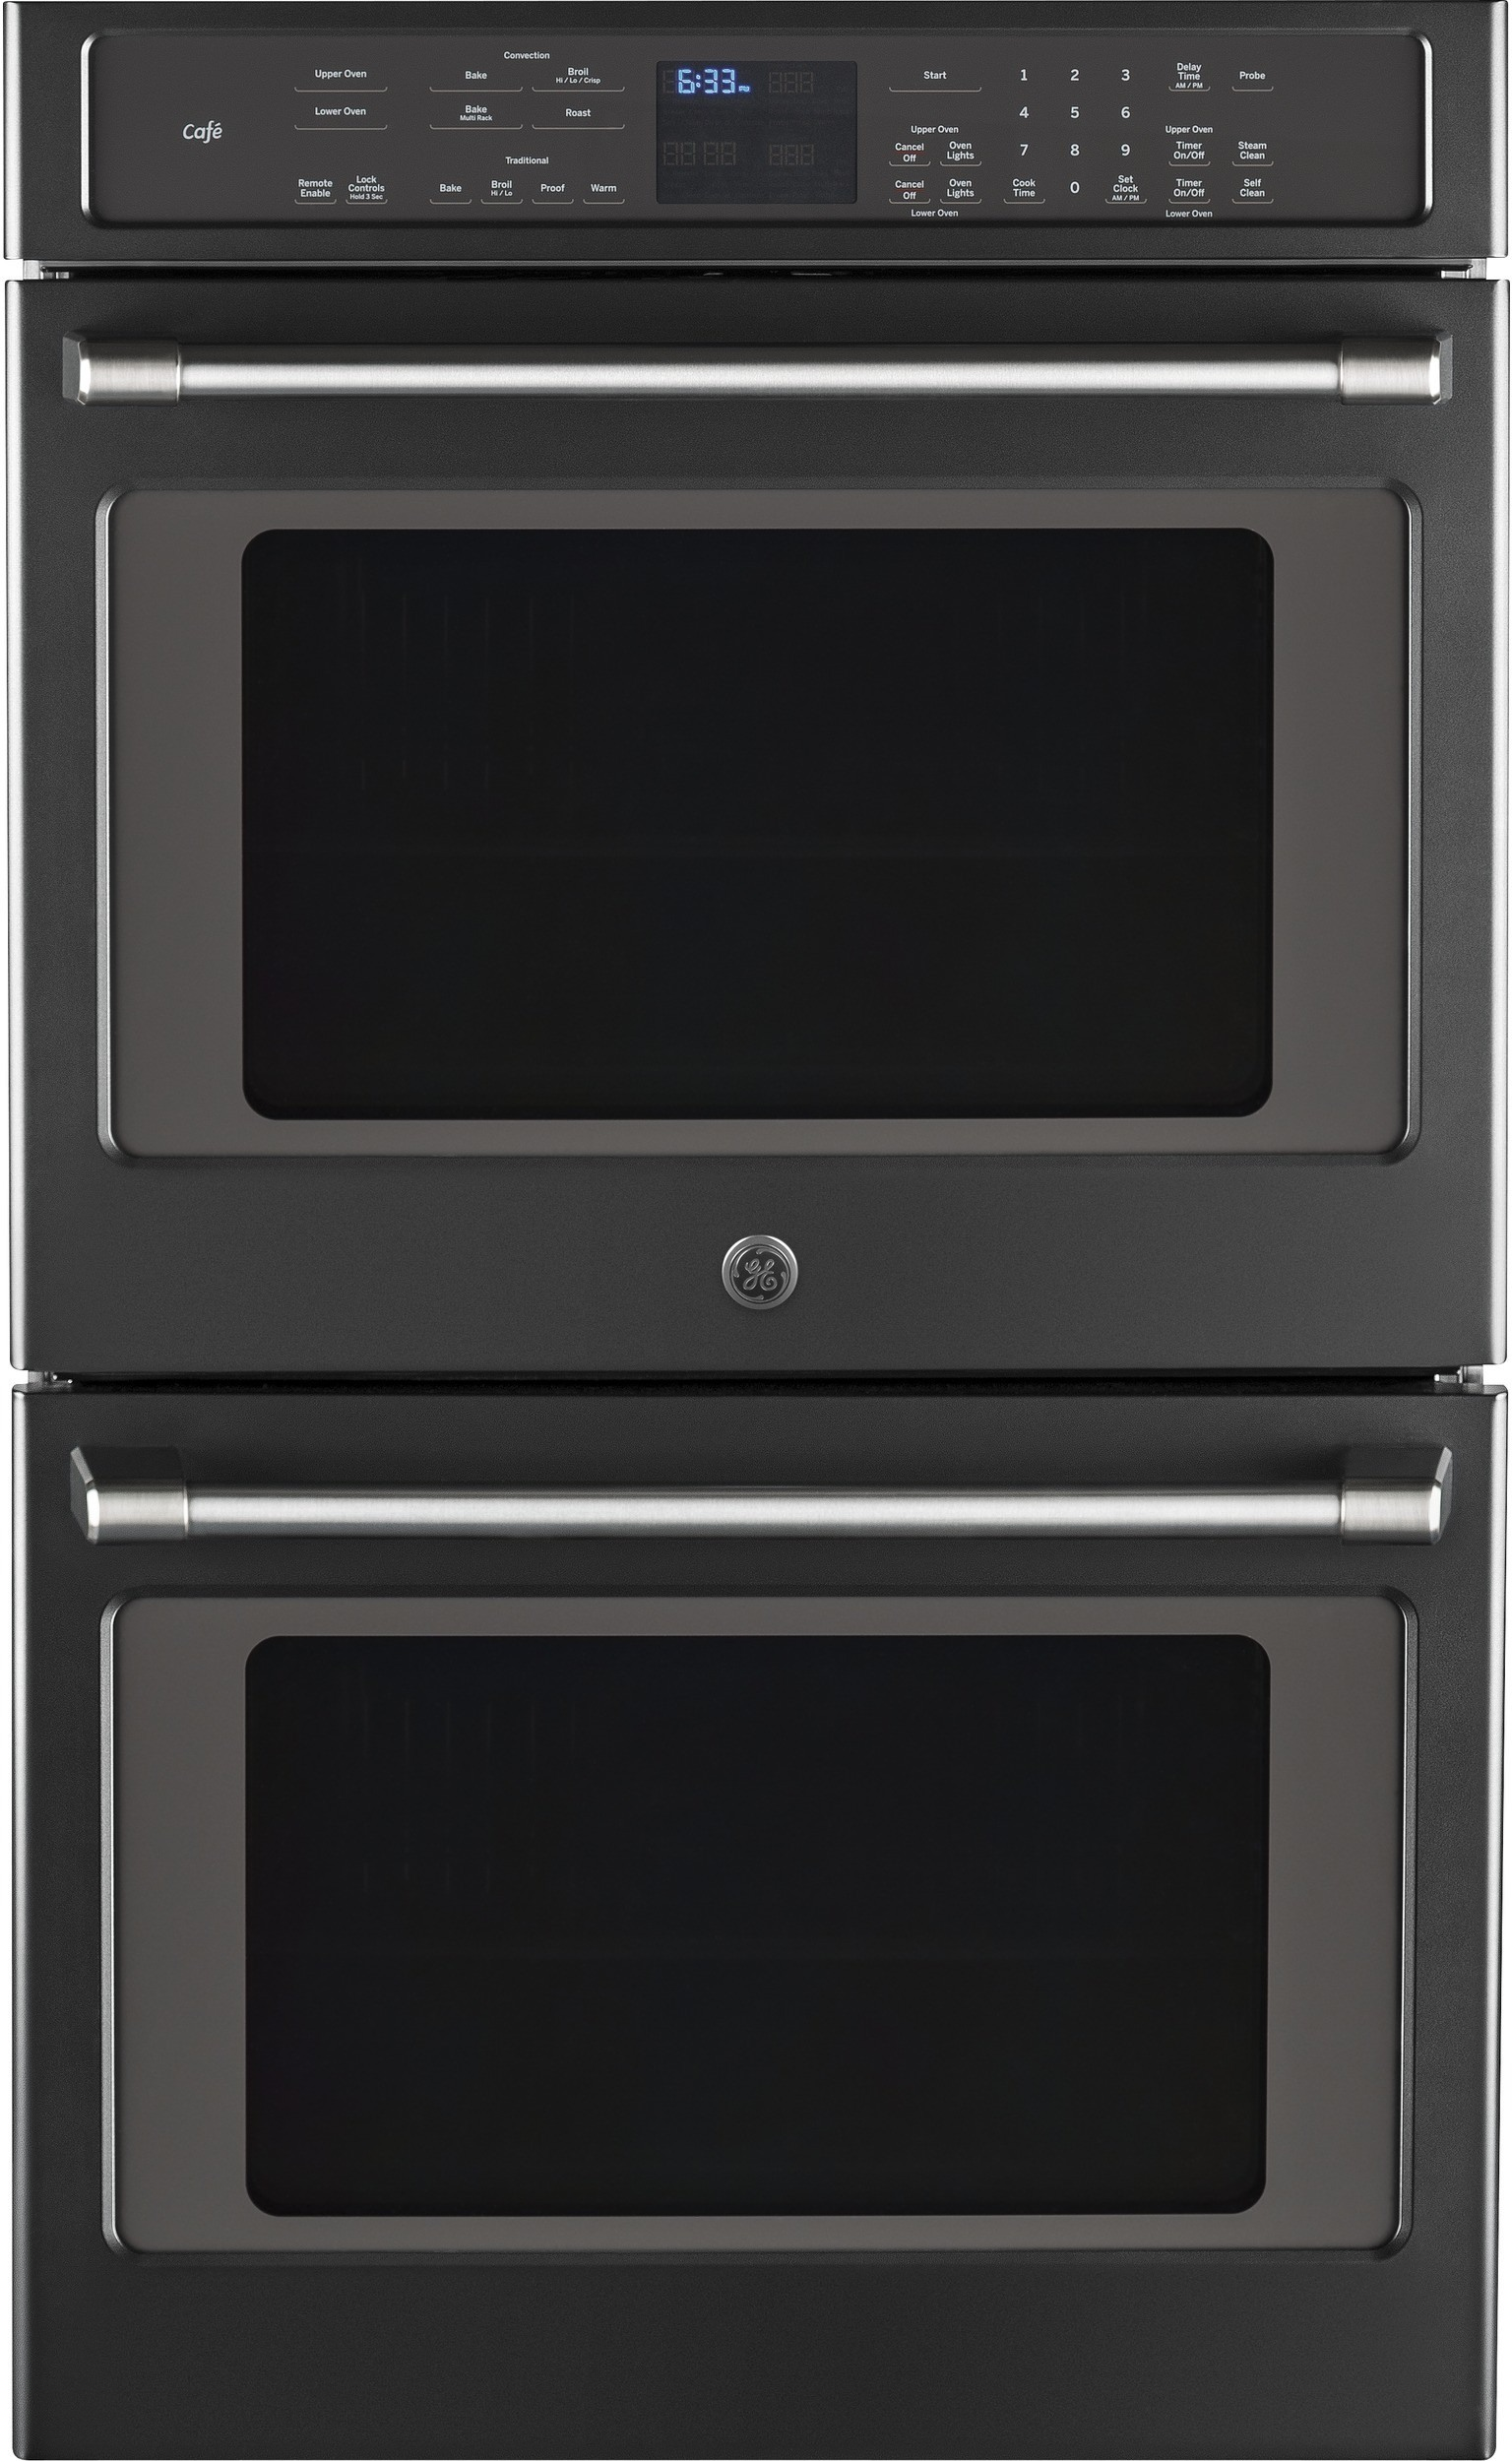 Ge Ct9550ekds 30 Inch Double Wall Oven With 10 0 Cu Ft